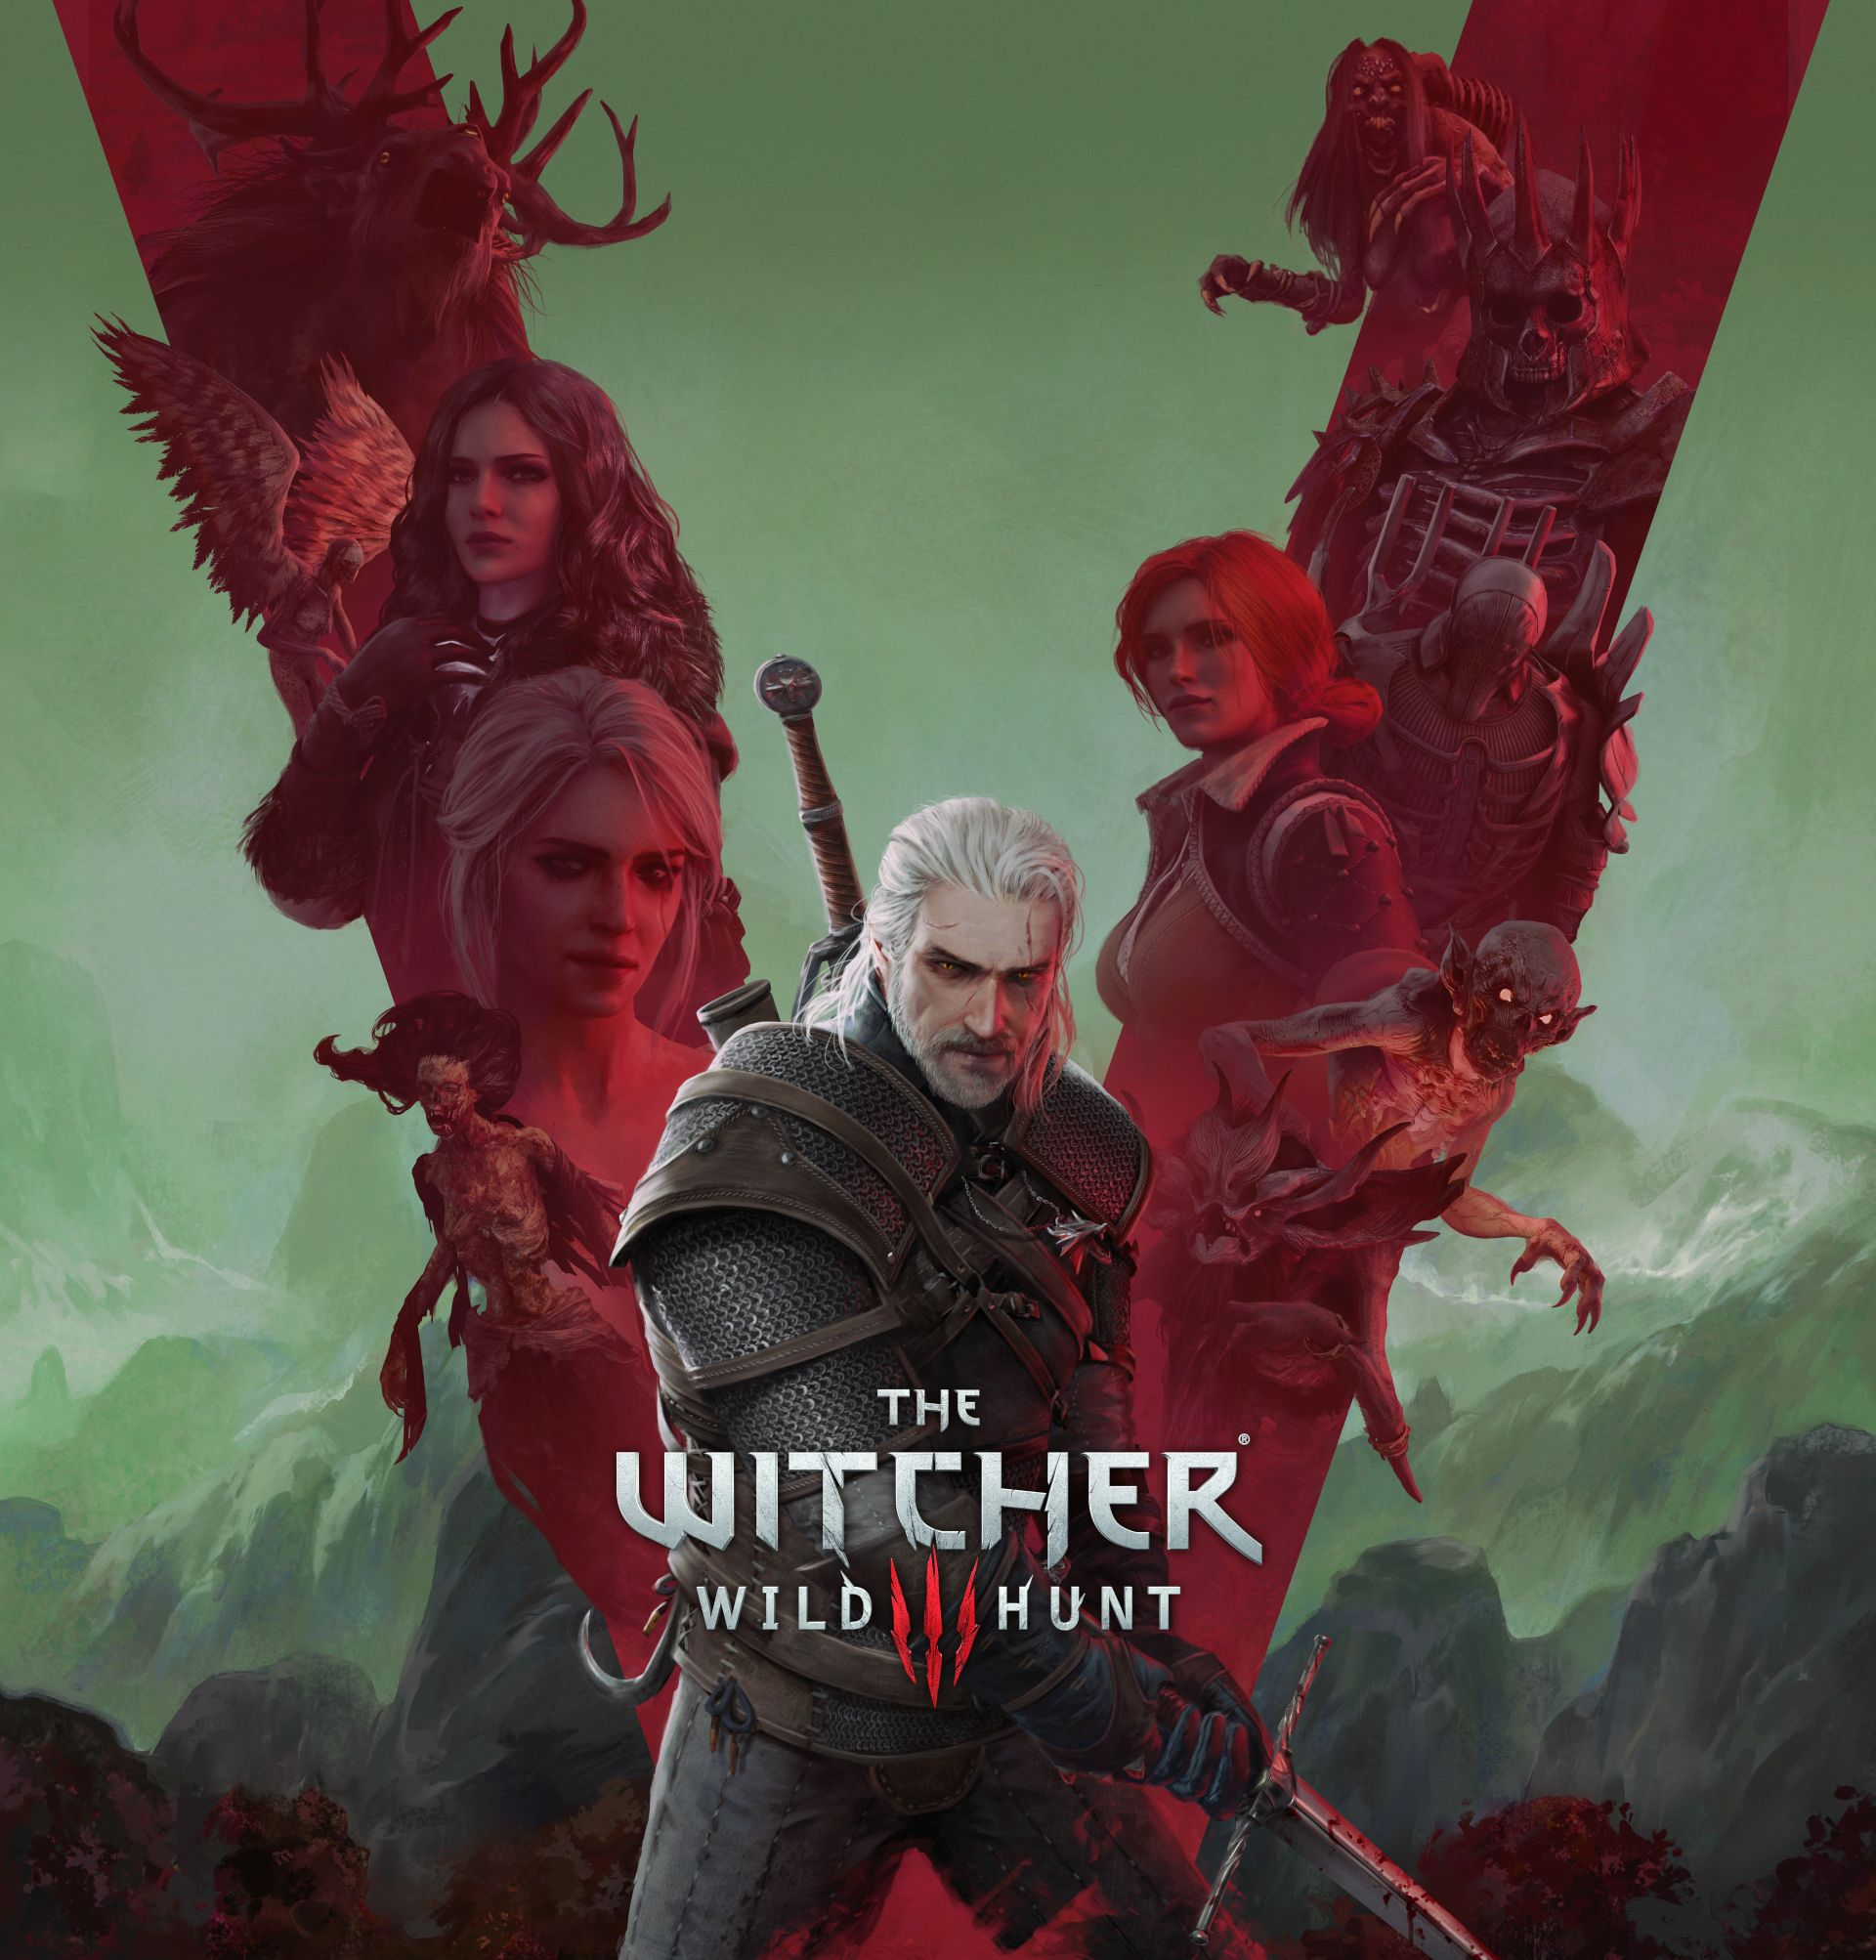 The Witcher 3 turns five, celebrates with discounts and a fantastic artwork